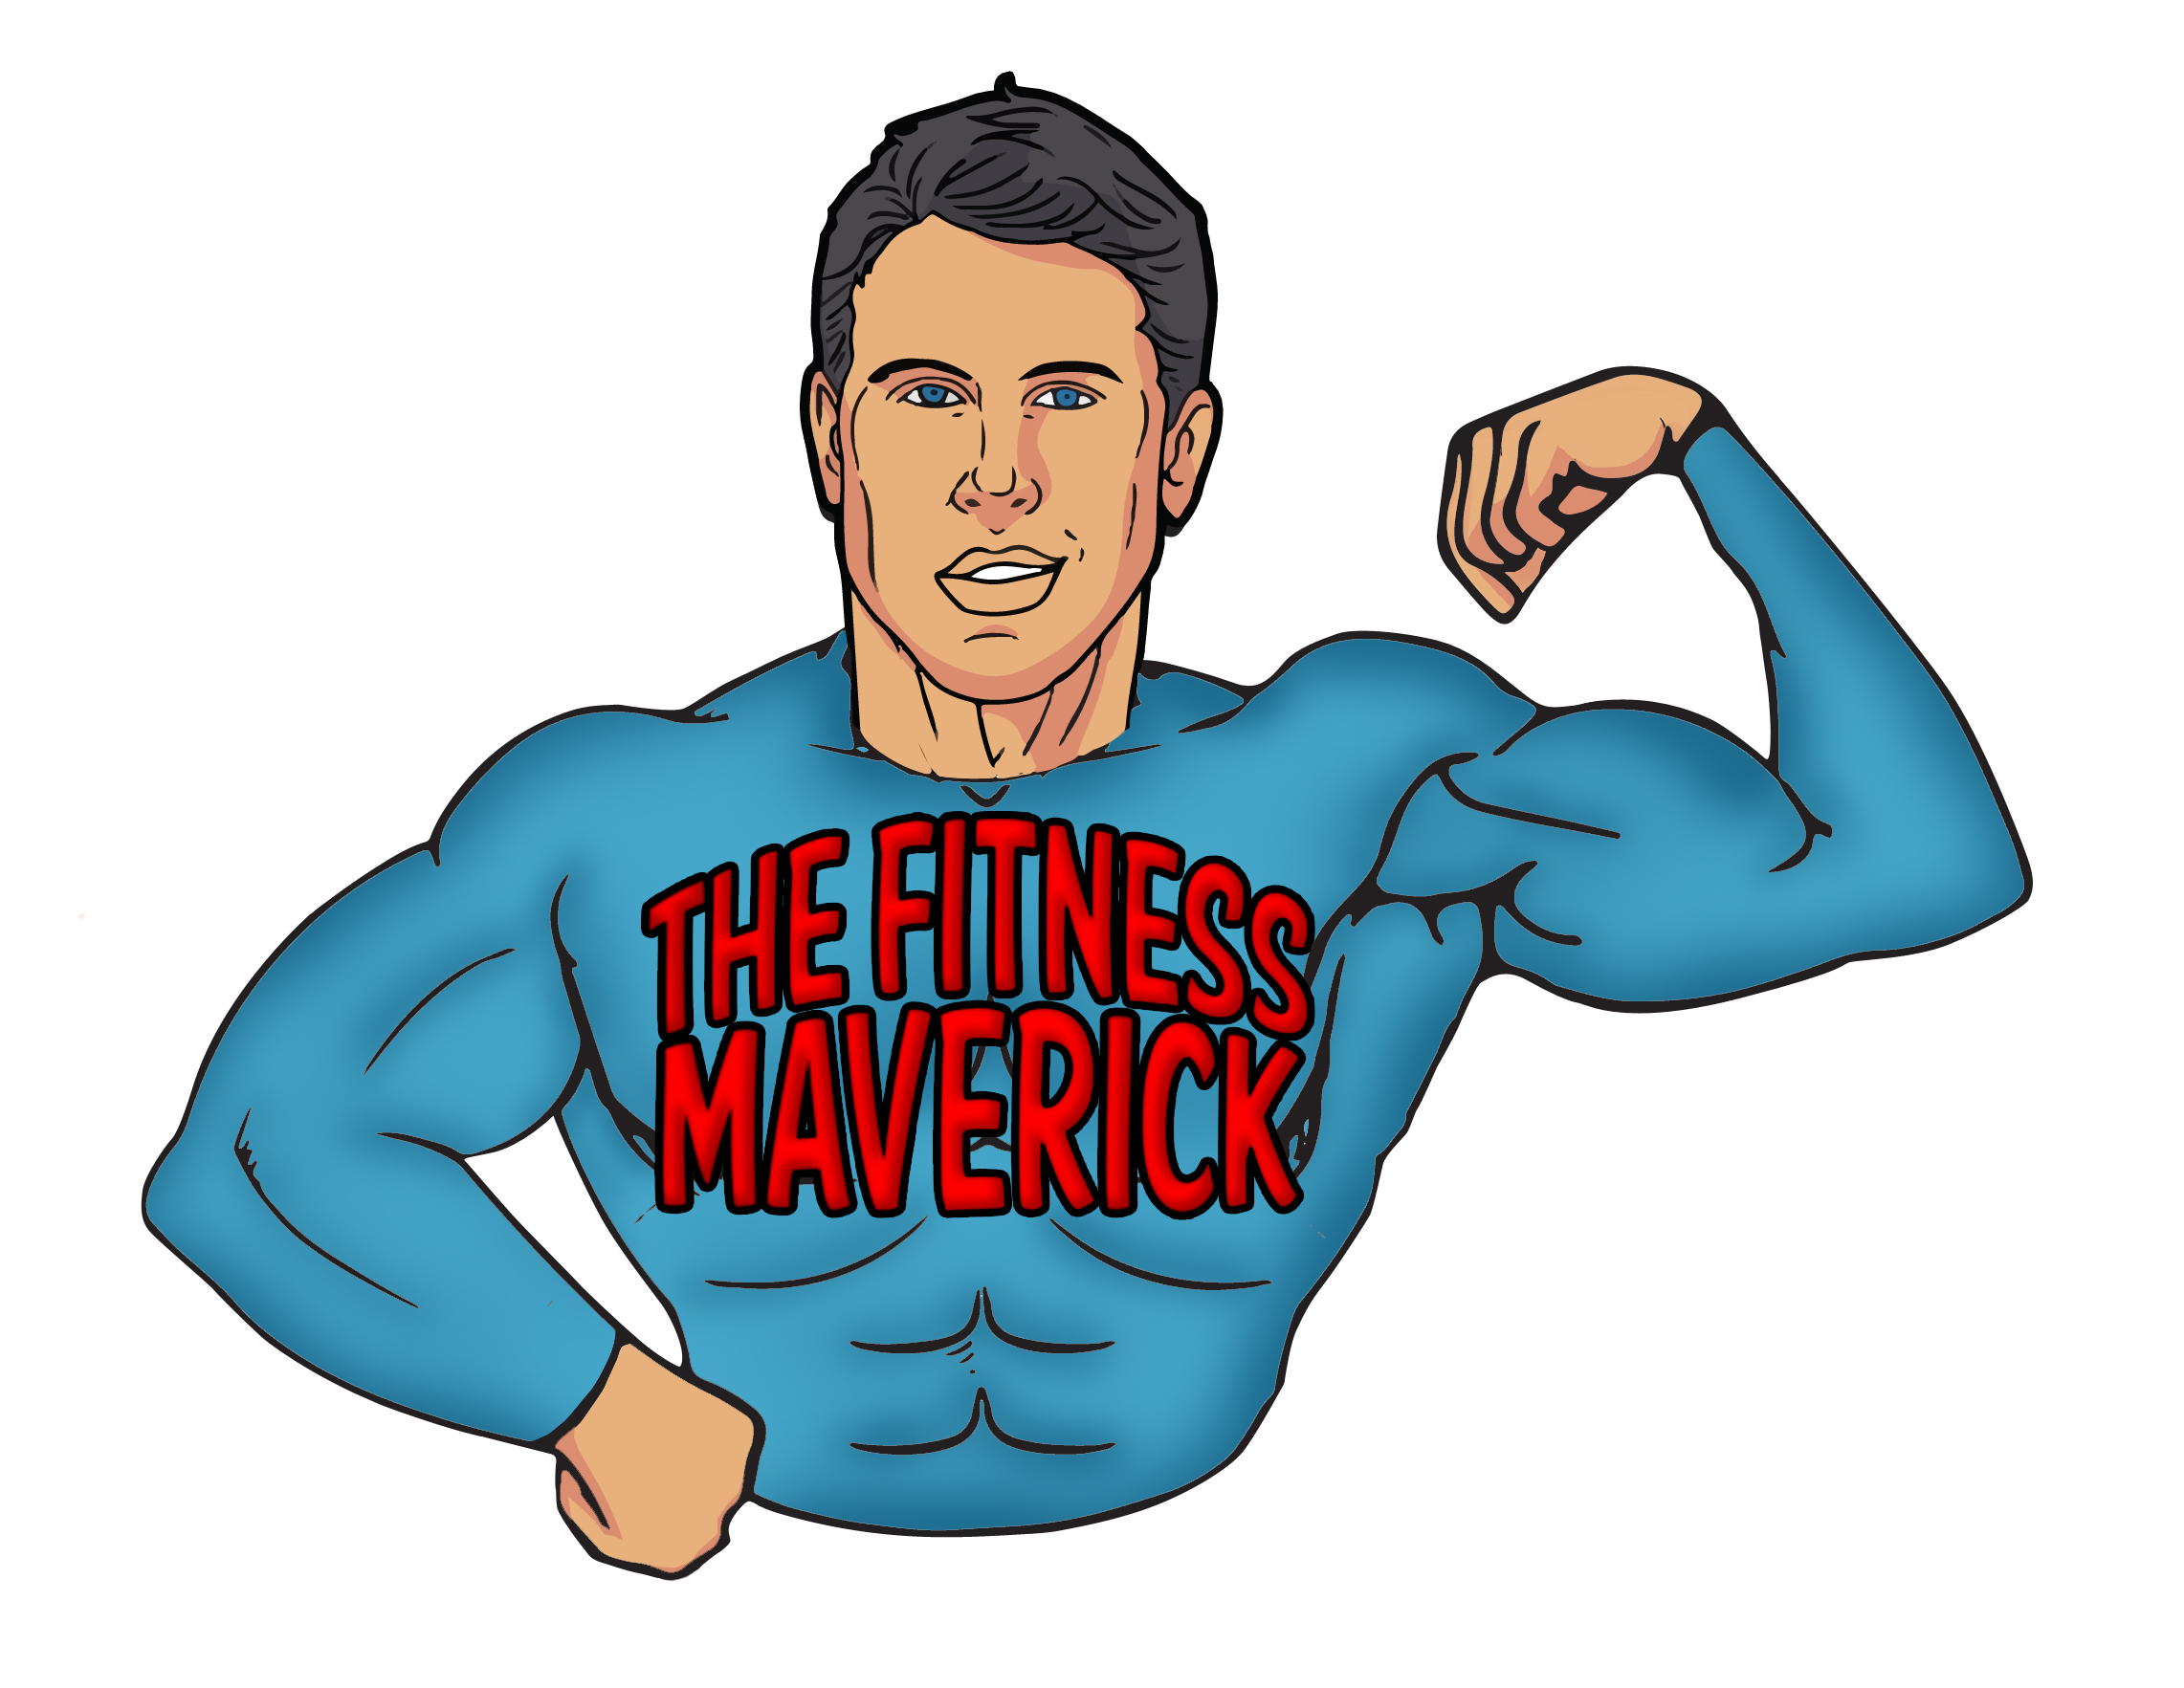 Gareth Sapstead - The Fitness Maverick